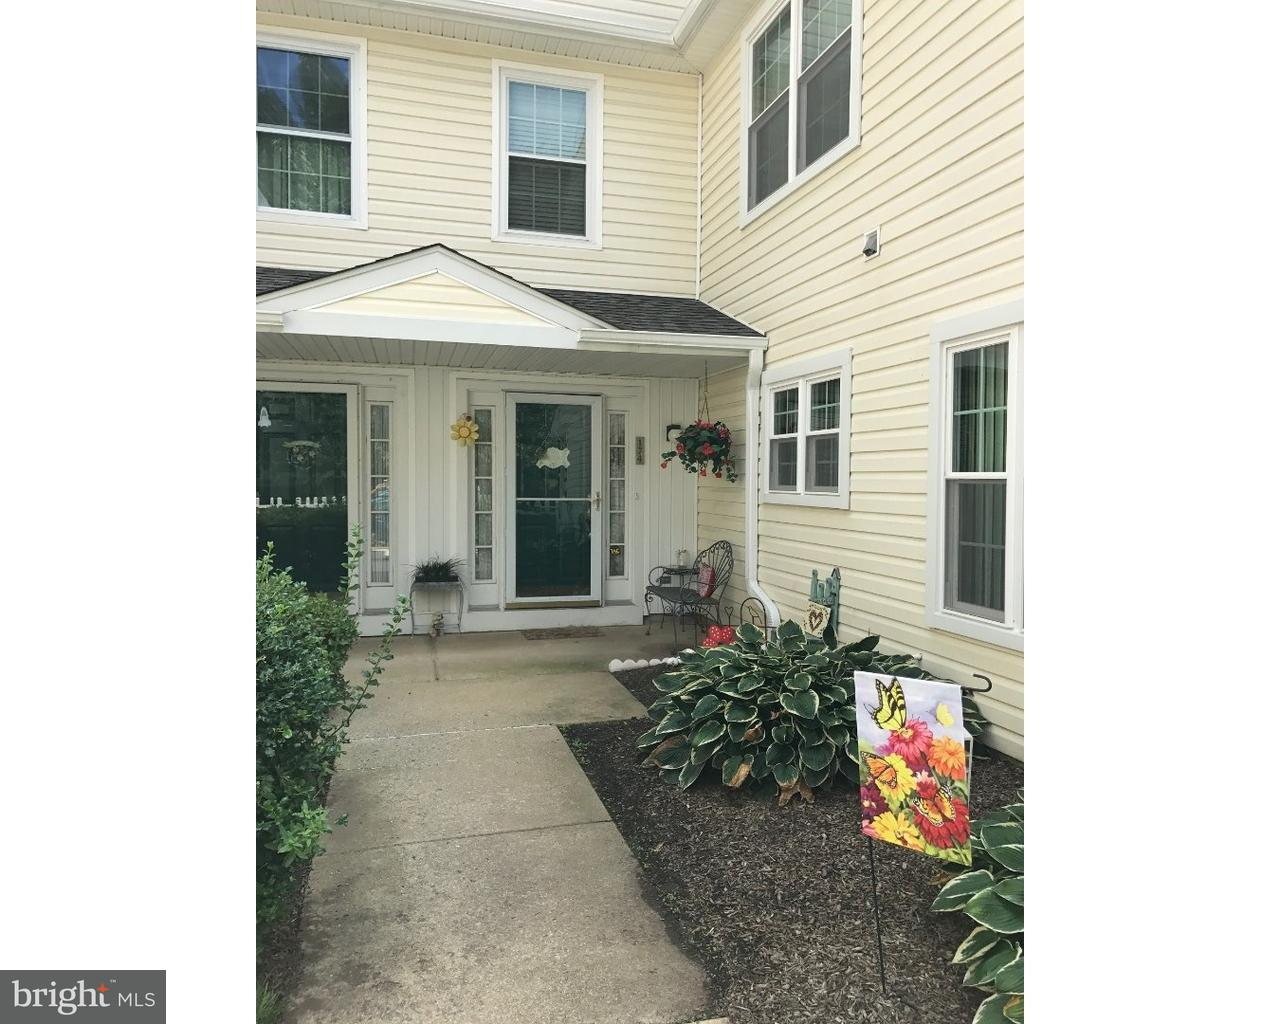 174 KINGSWOOD CT, GLEN MILLS - Listed at $237,900,